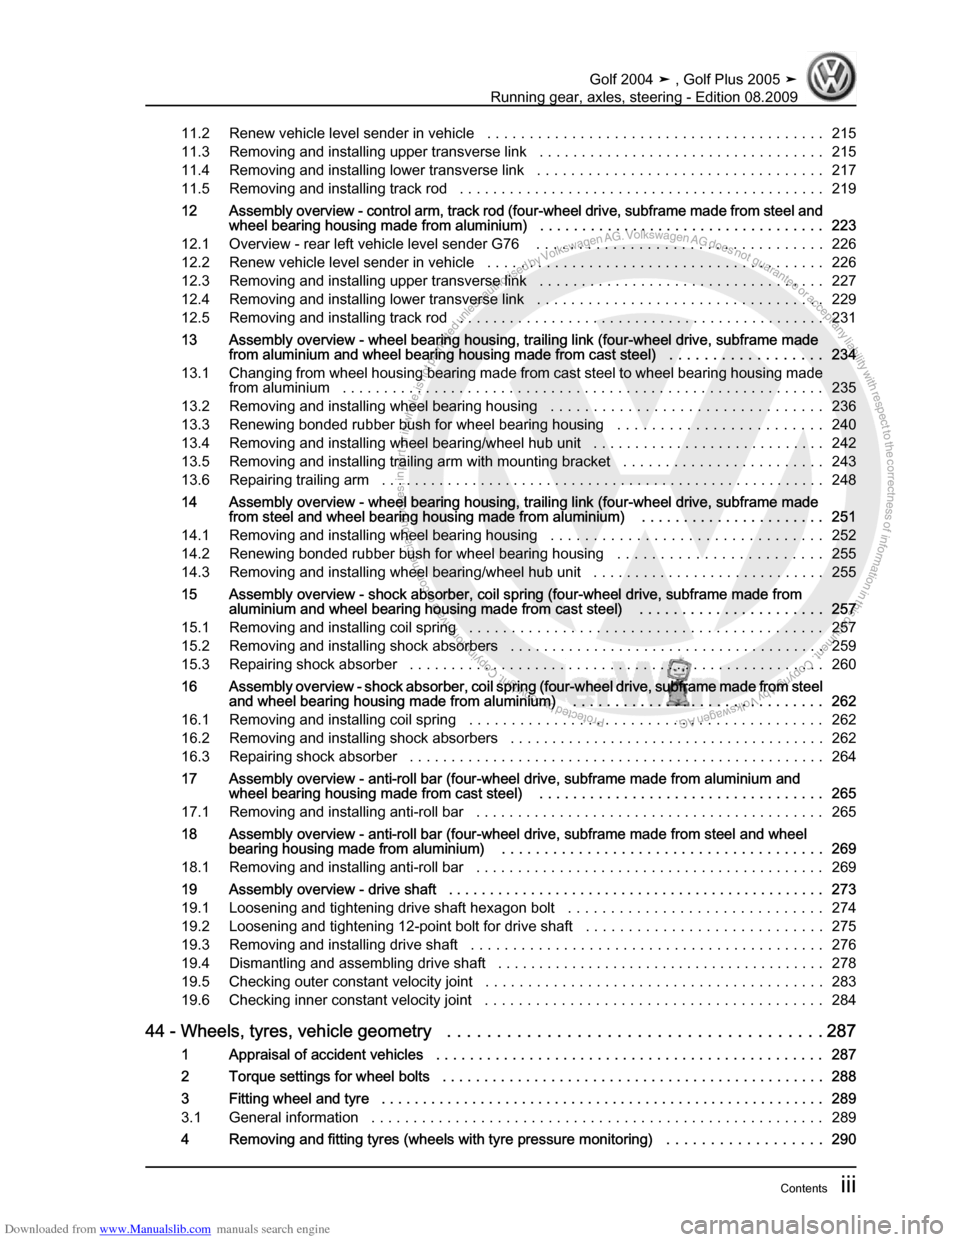 VOLKSWAGEN GOLF 2004 1J / 4.G Running Gear Axles Workshop